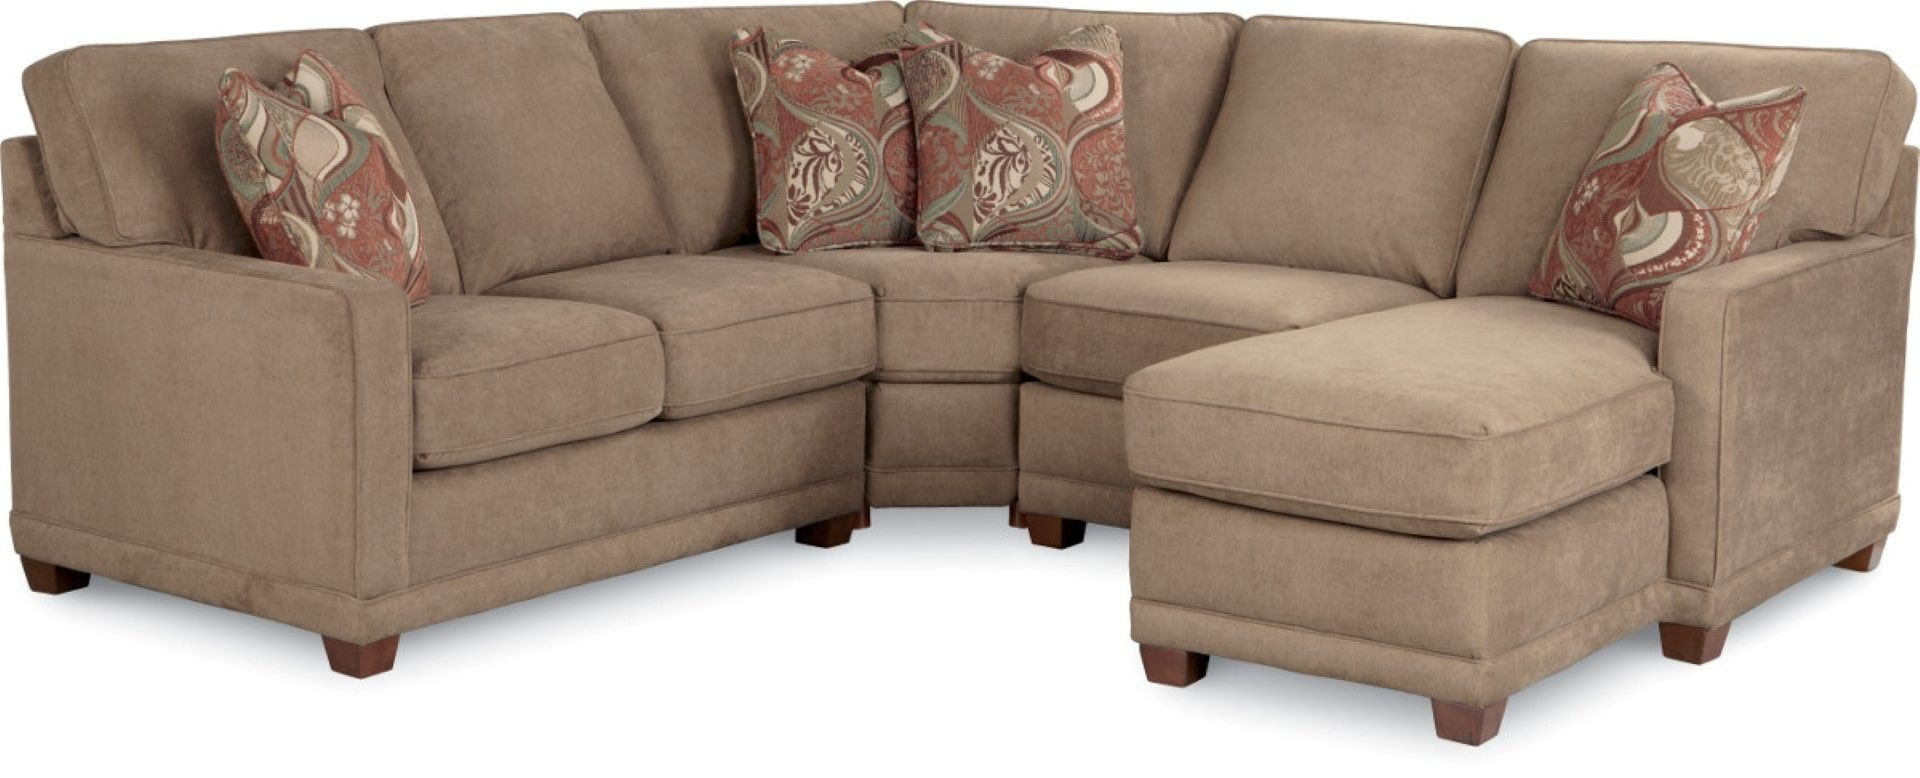 Kennedy Sectional Sofa Lazy Boy Lazyboy Sectional Sectional Sectional Sofa